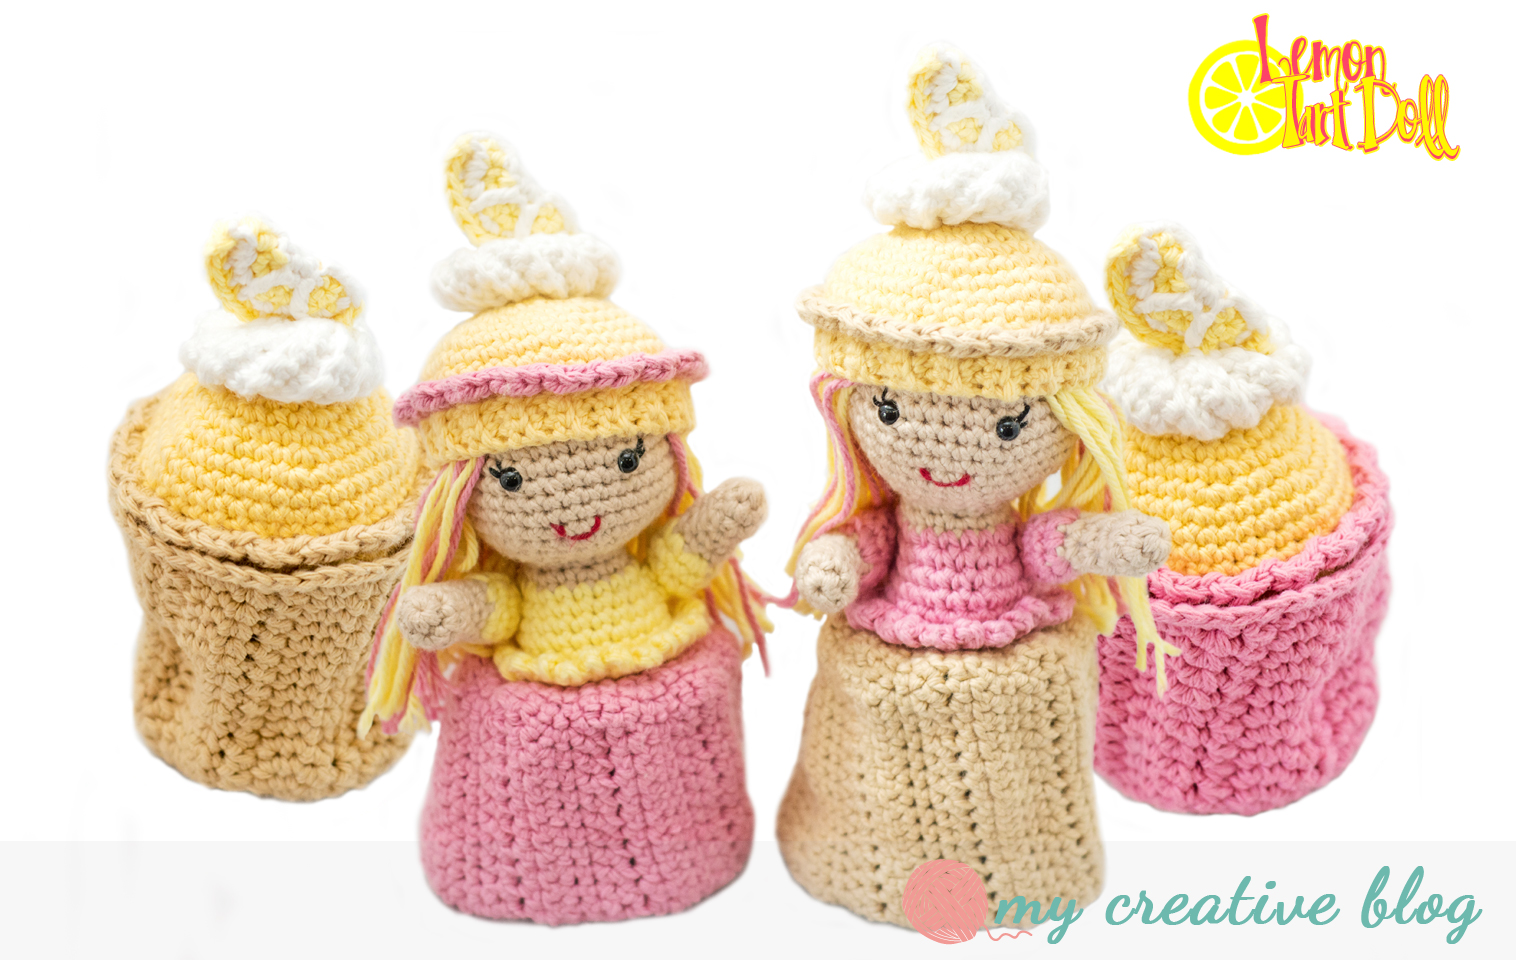 Lemon tart cupcake doll crochet pattern my creative blog lemon tart doll crochet pattern dt1010fo